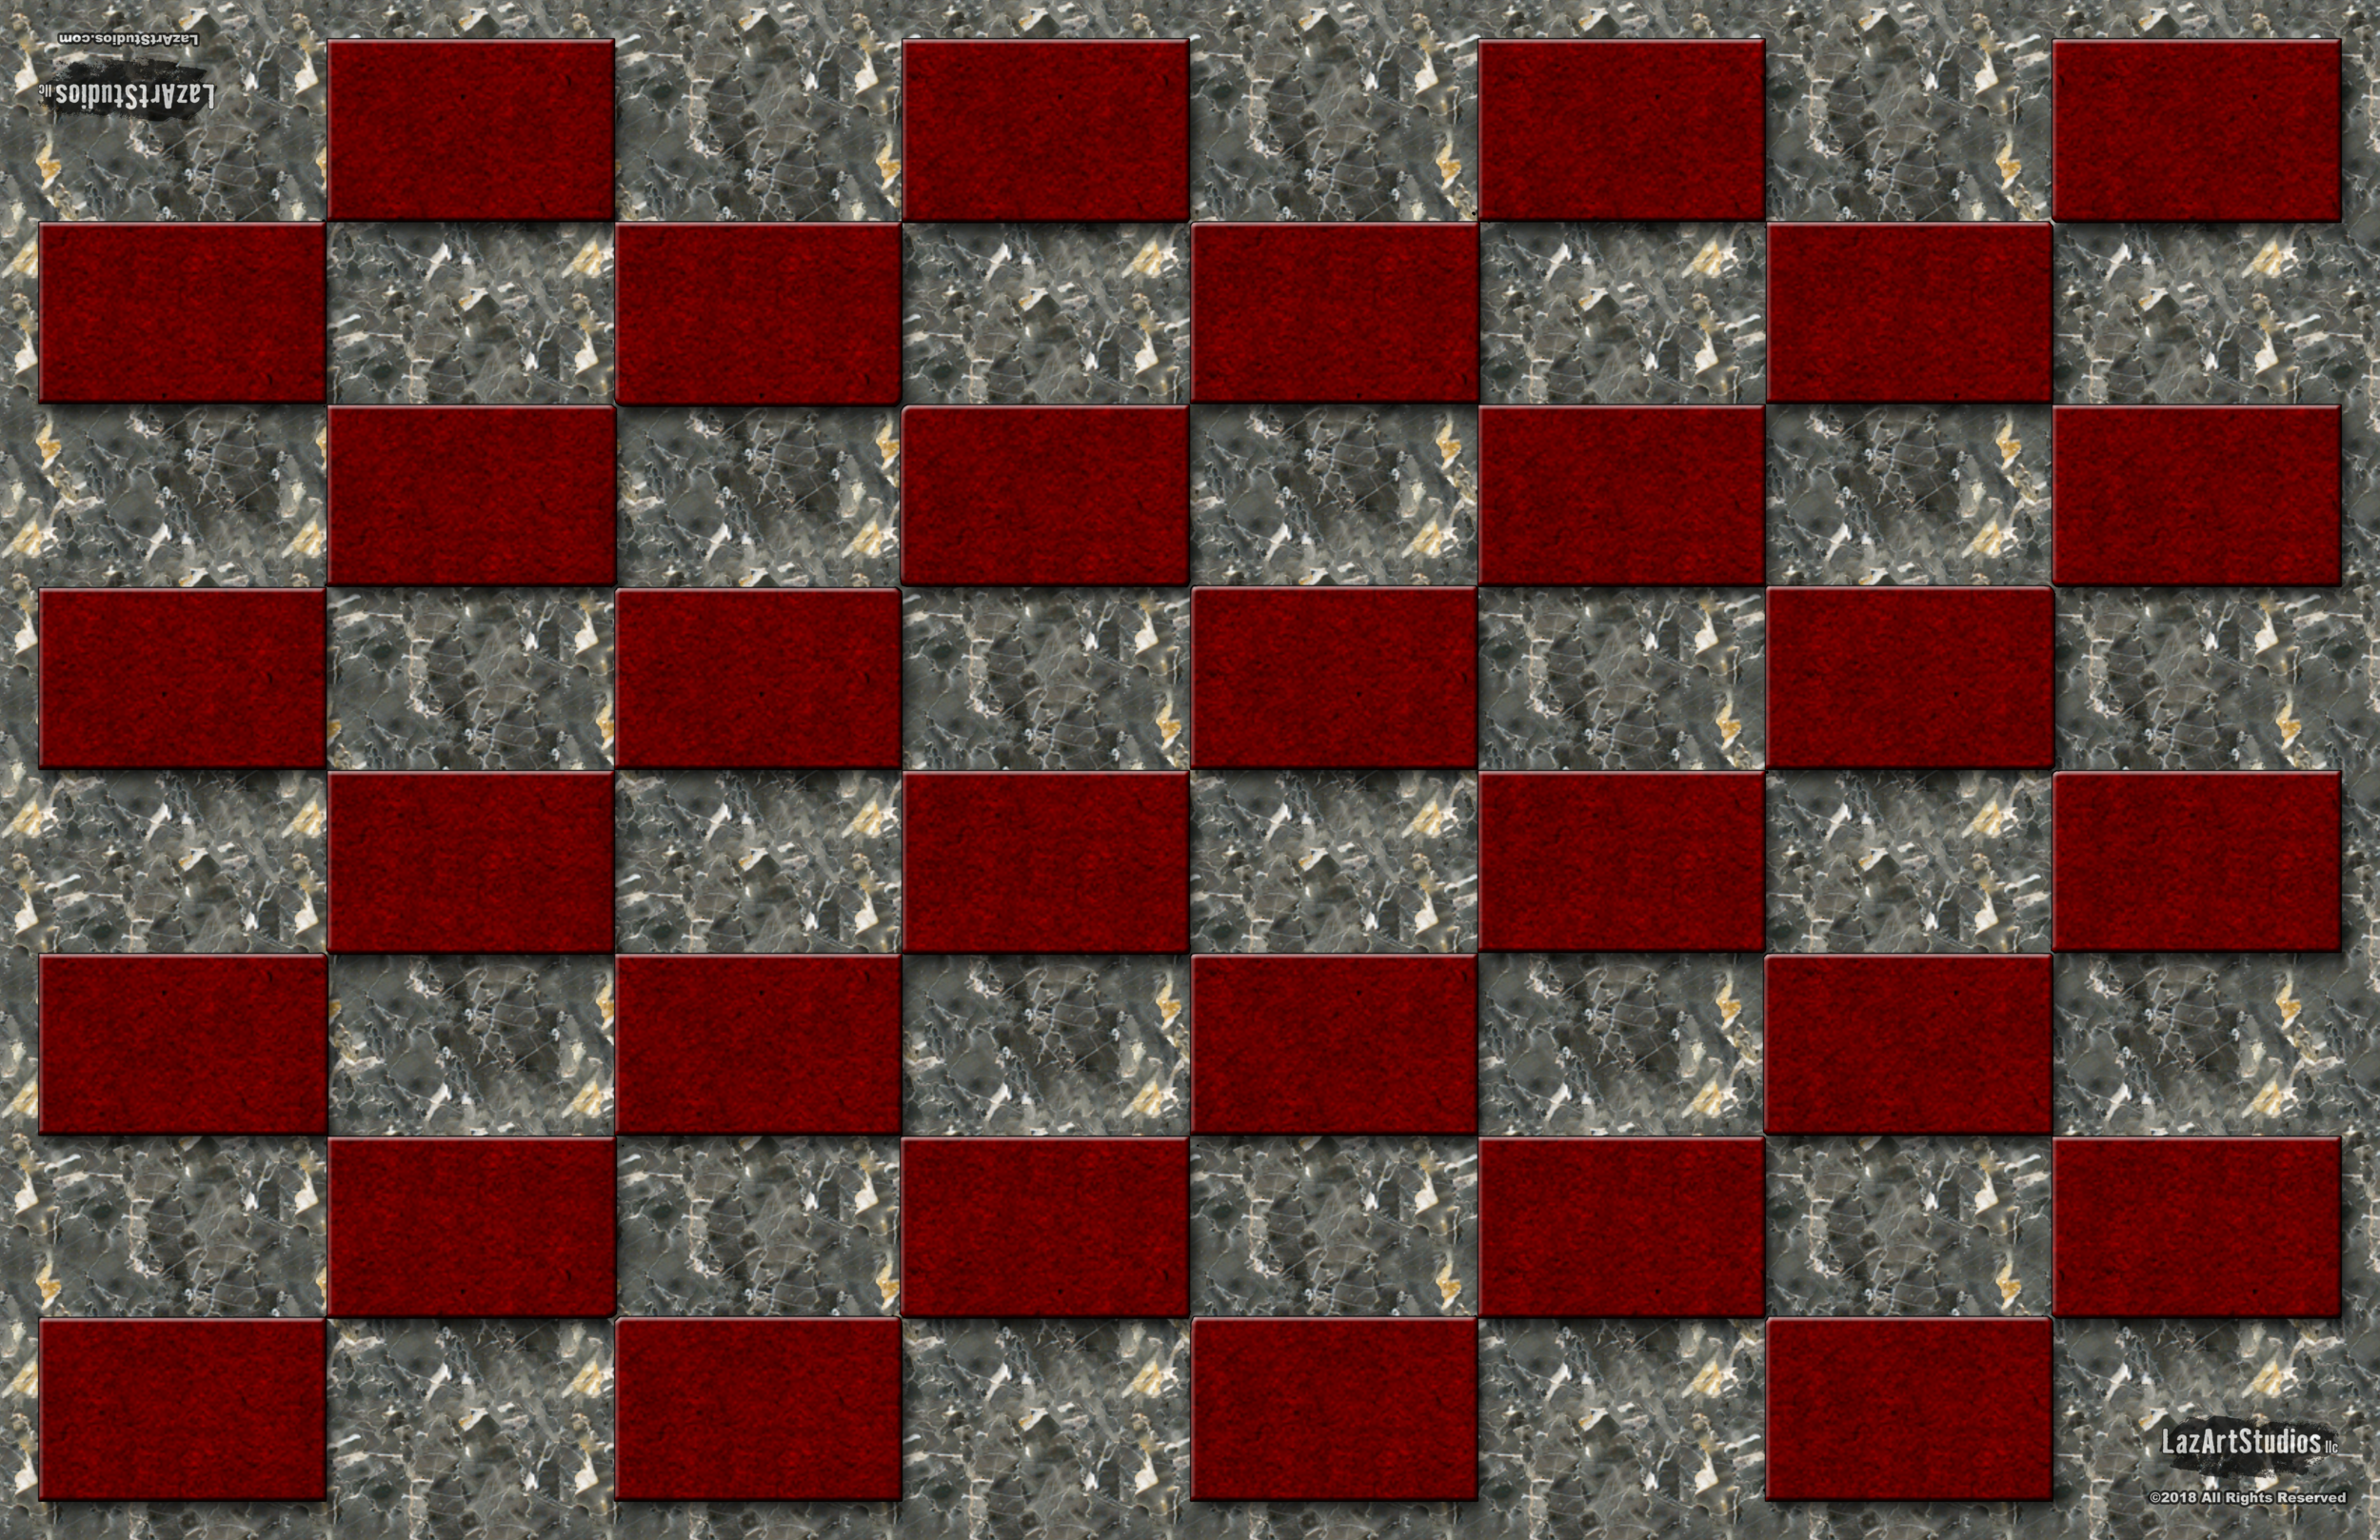 GameBoard-RoyalHall-wLogo.png